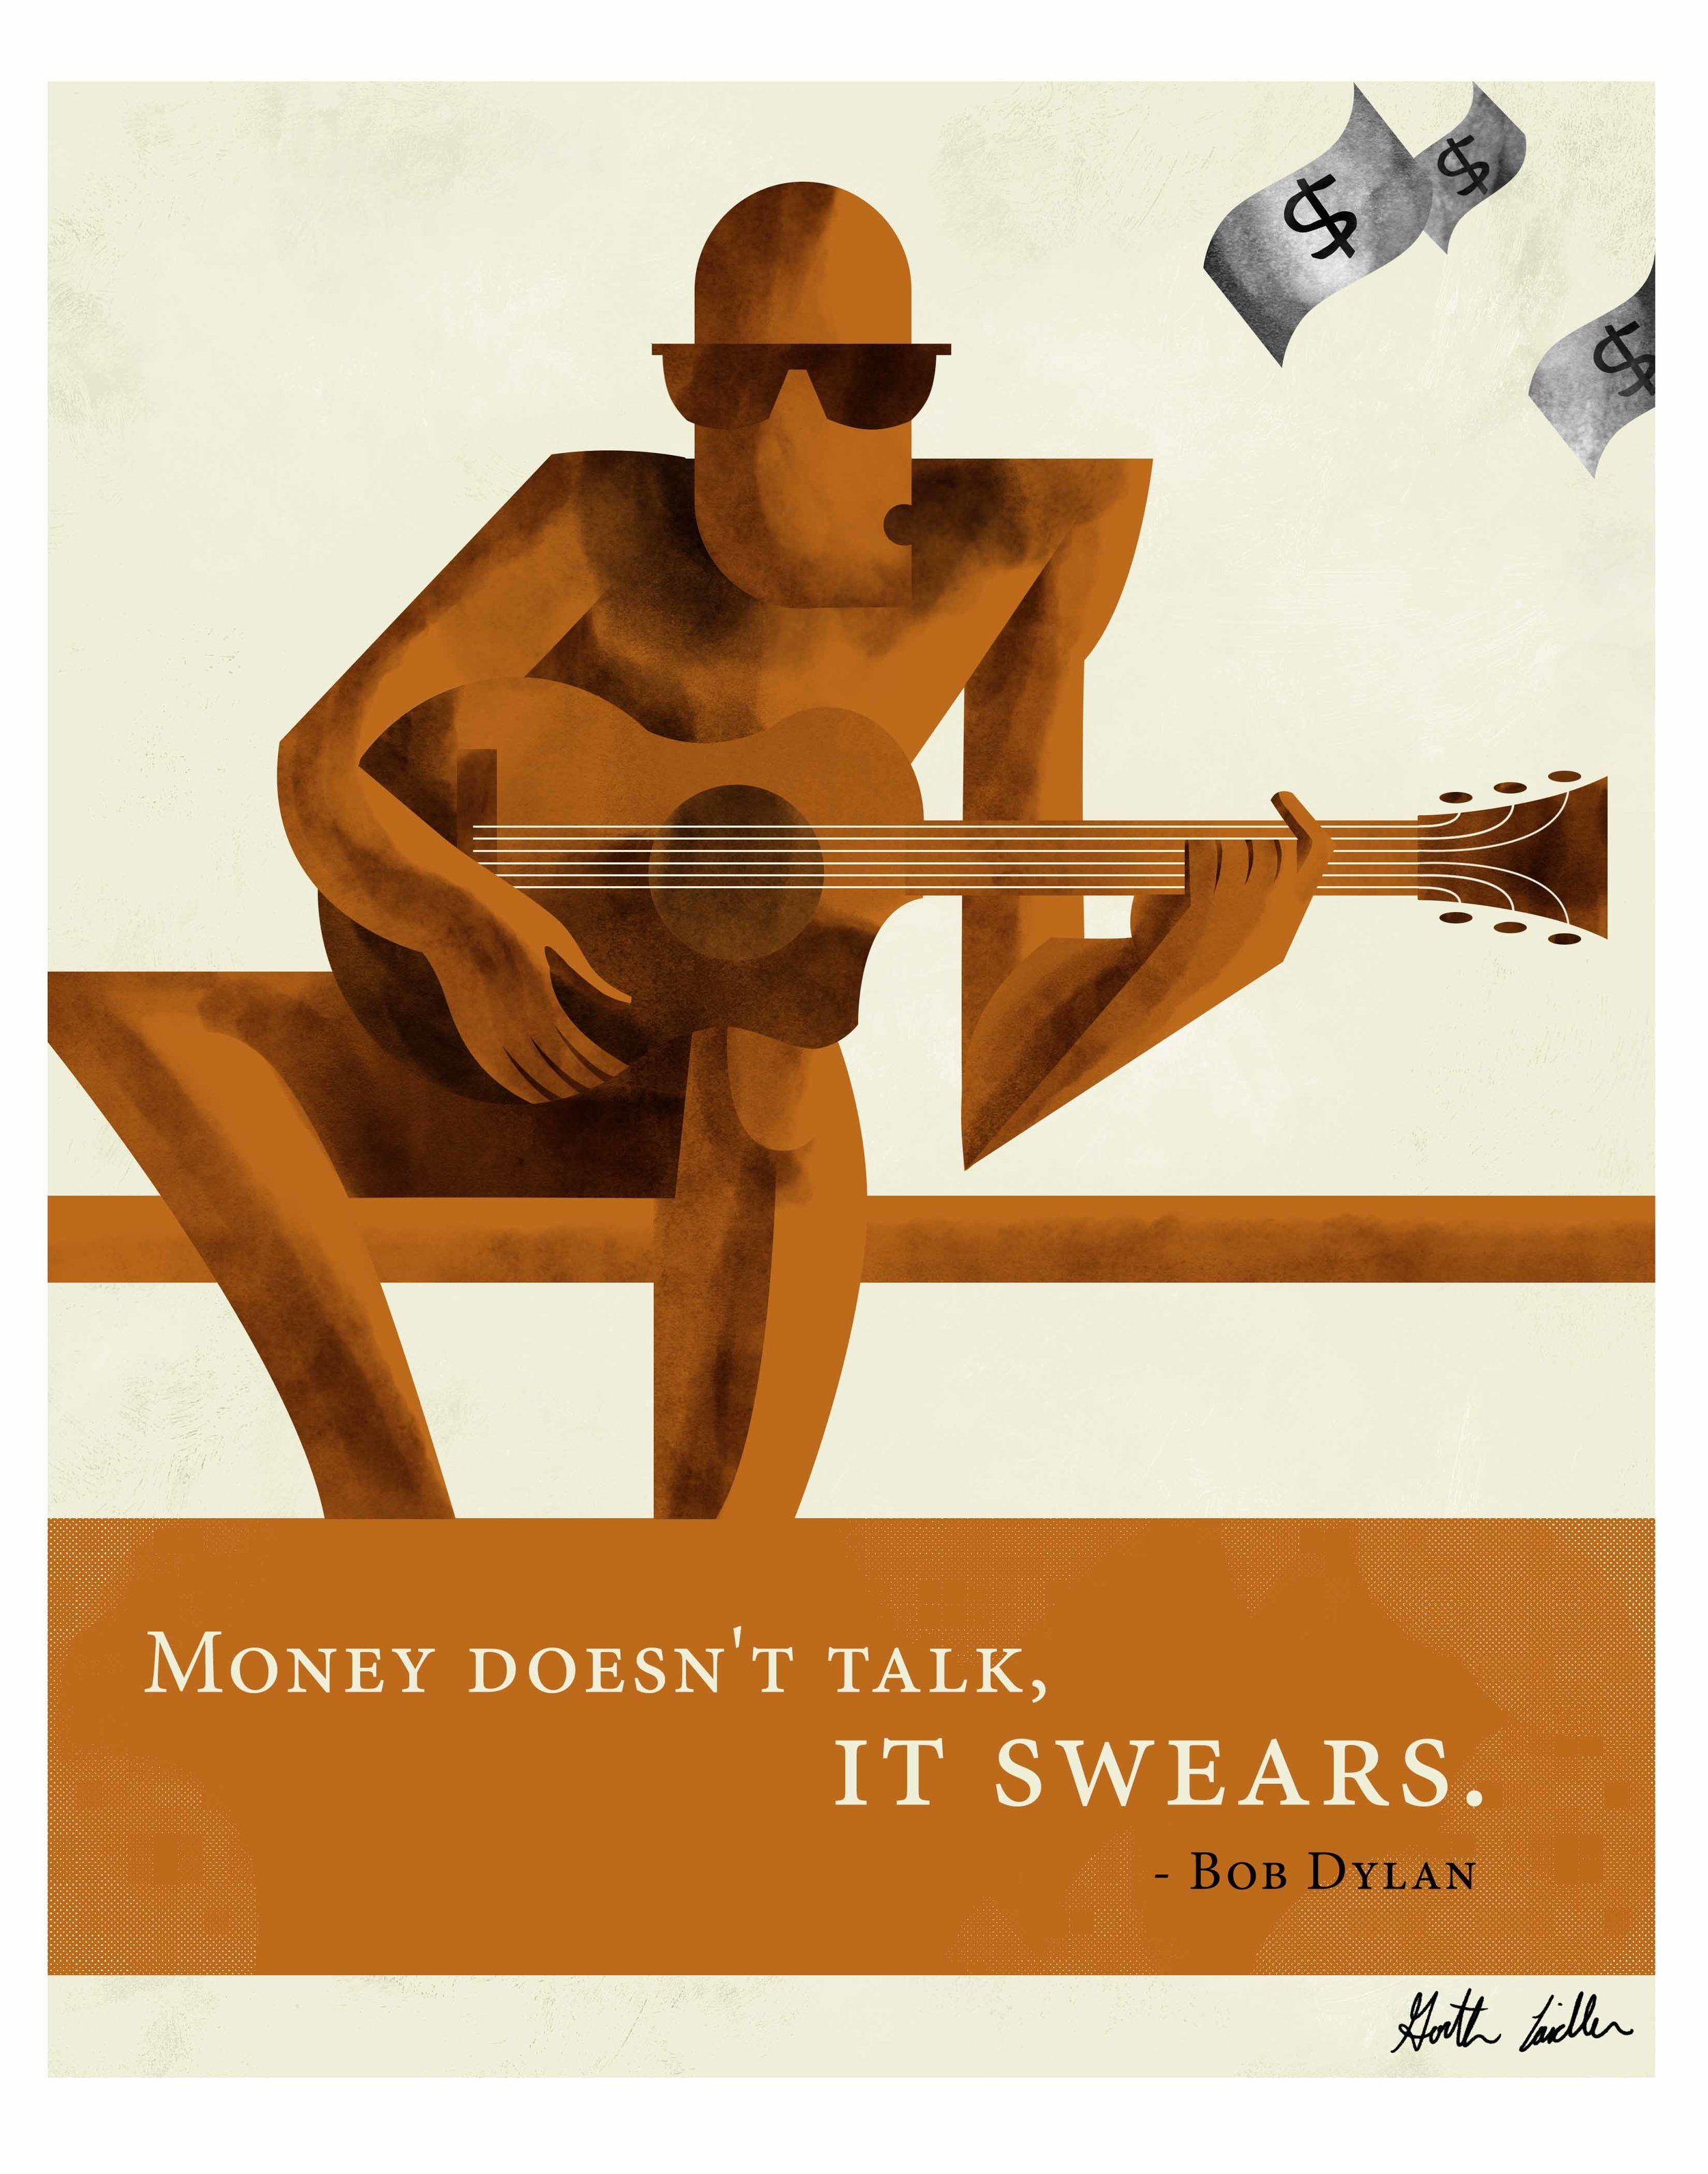 Quote Illustration - Bob Dylan